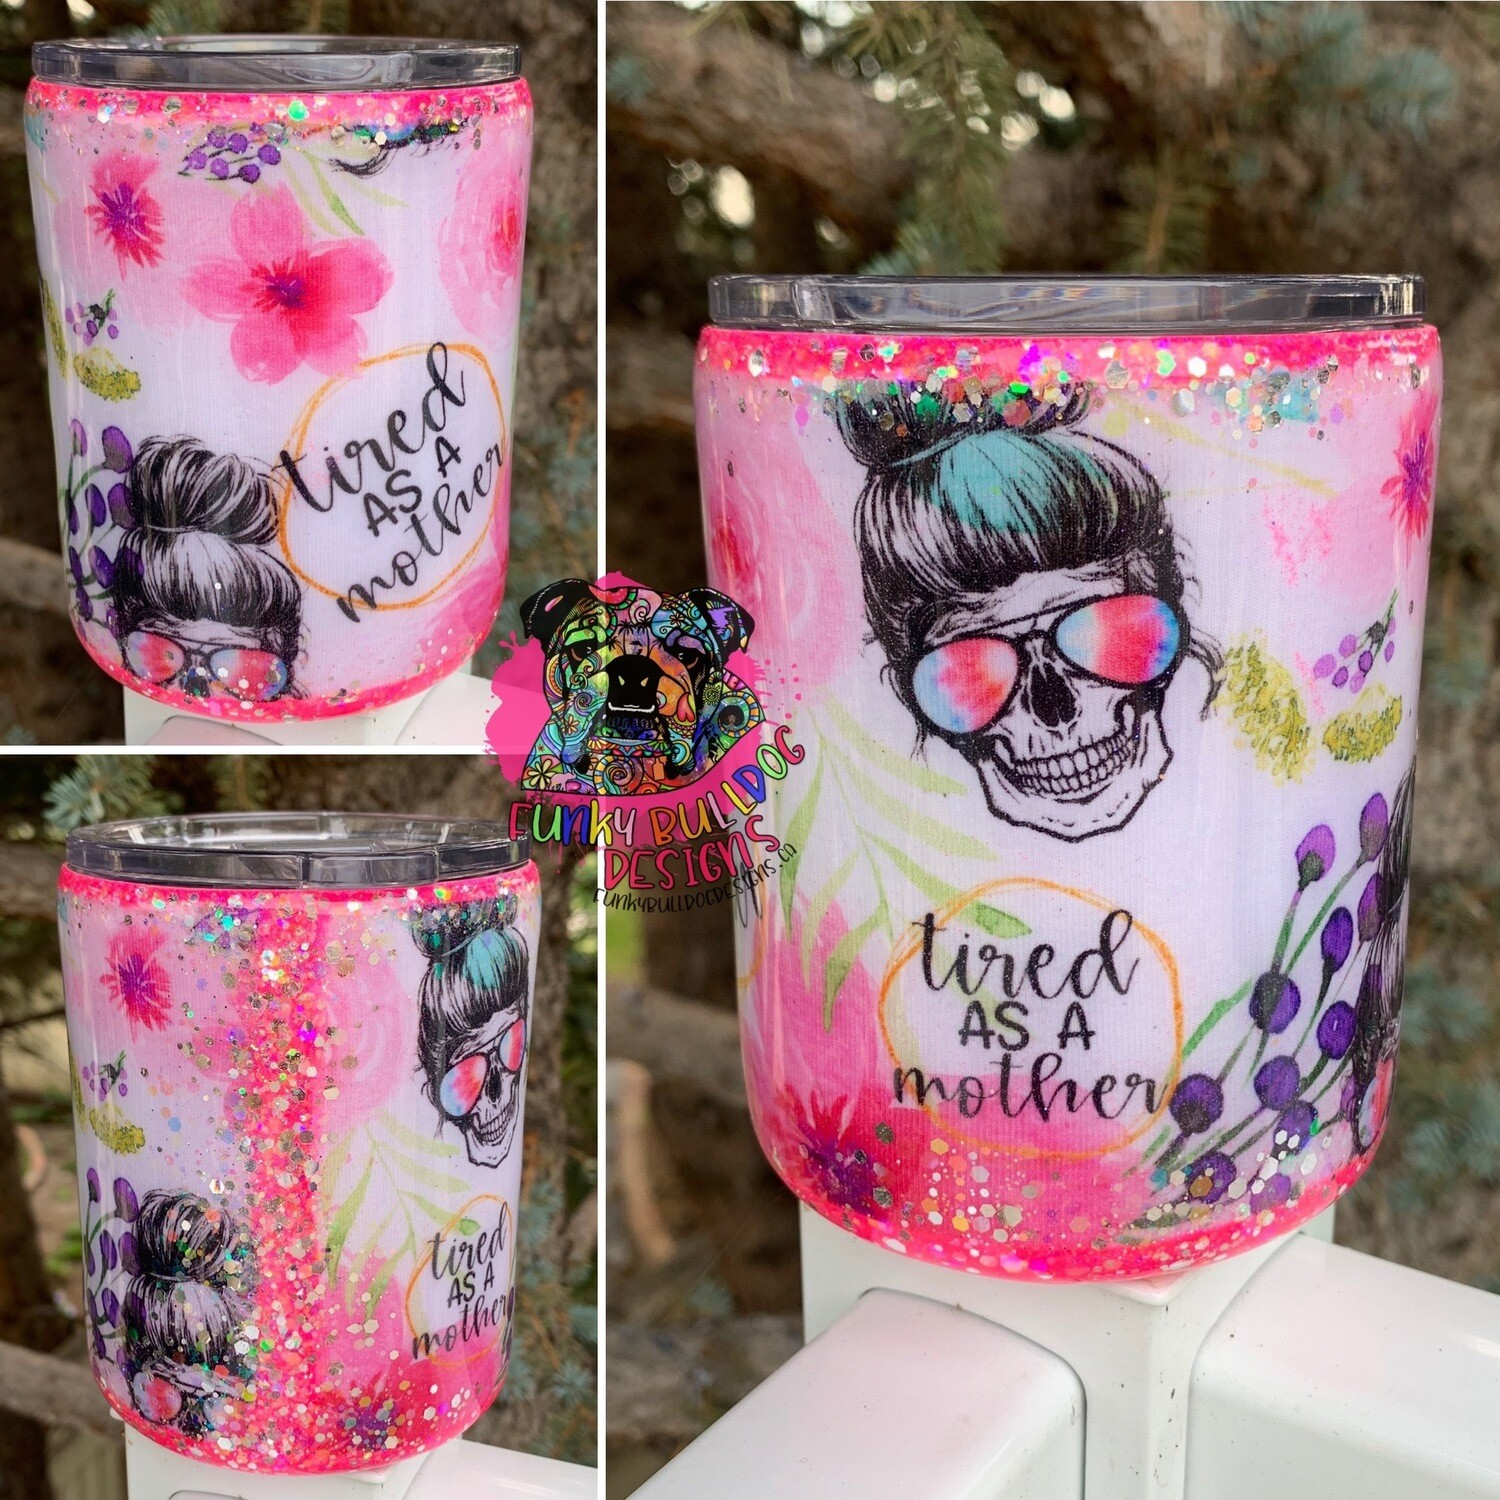 14oz stainless steel low ball fabric and glitter tumbler - tired as a mother